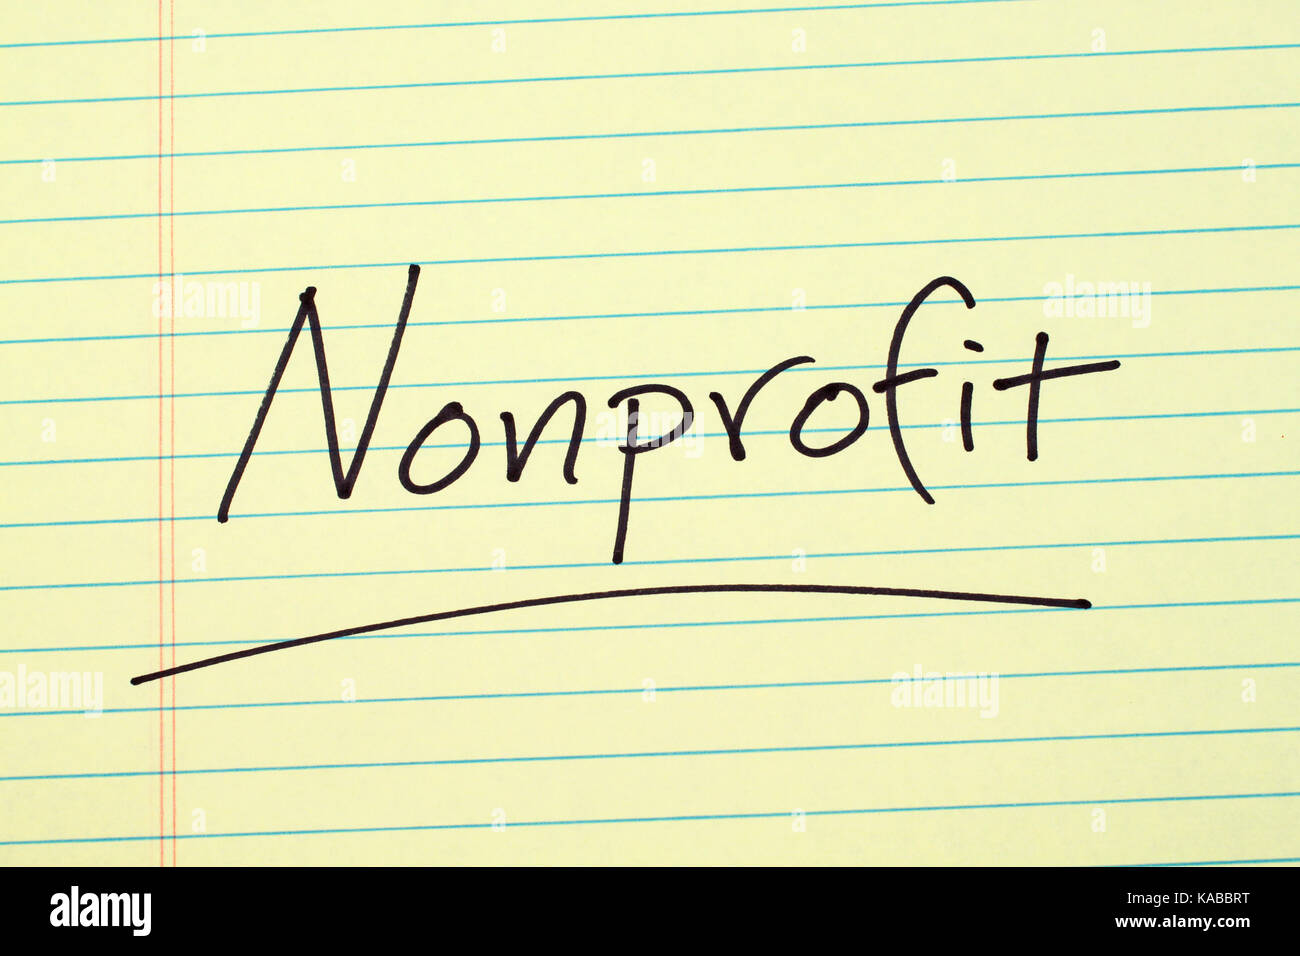 The word 'Nonprofit' underlined on a yellow legal pad - Stock Image